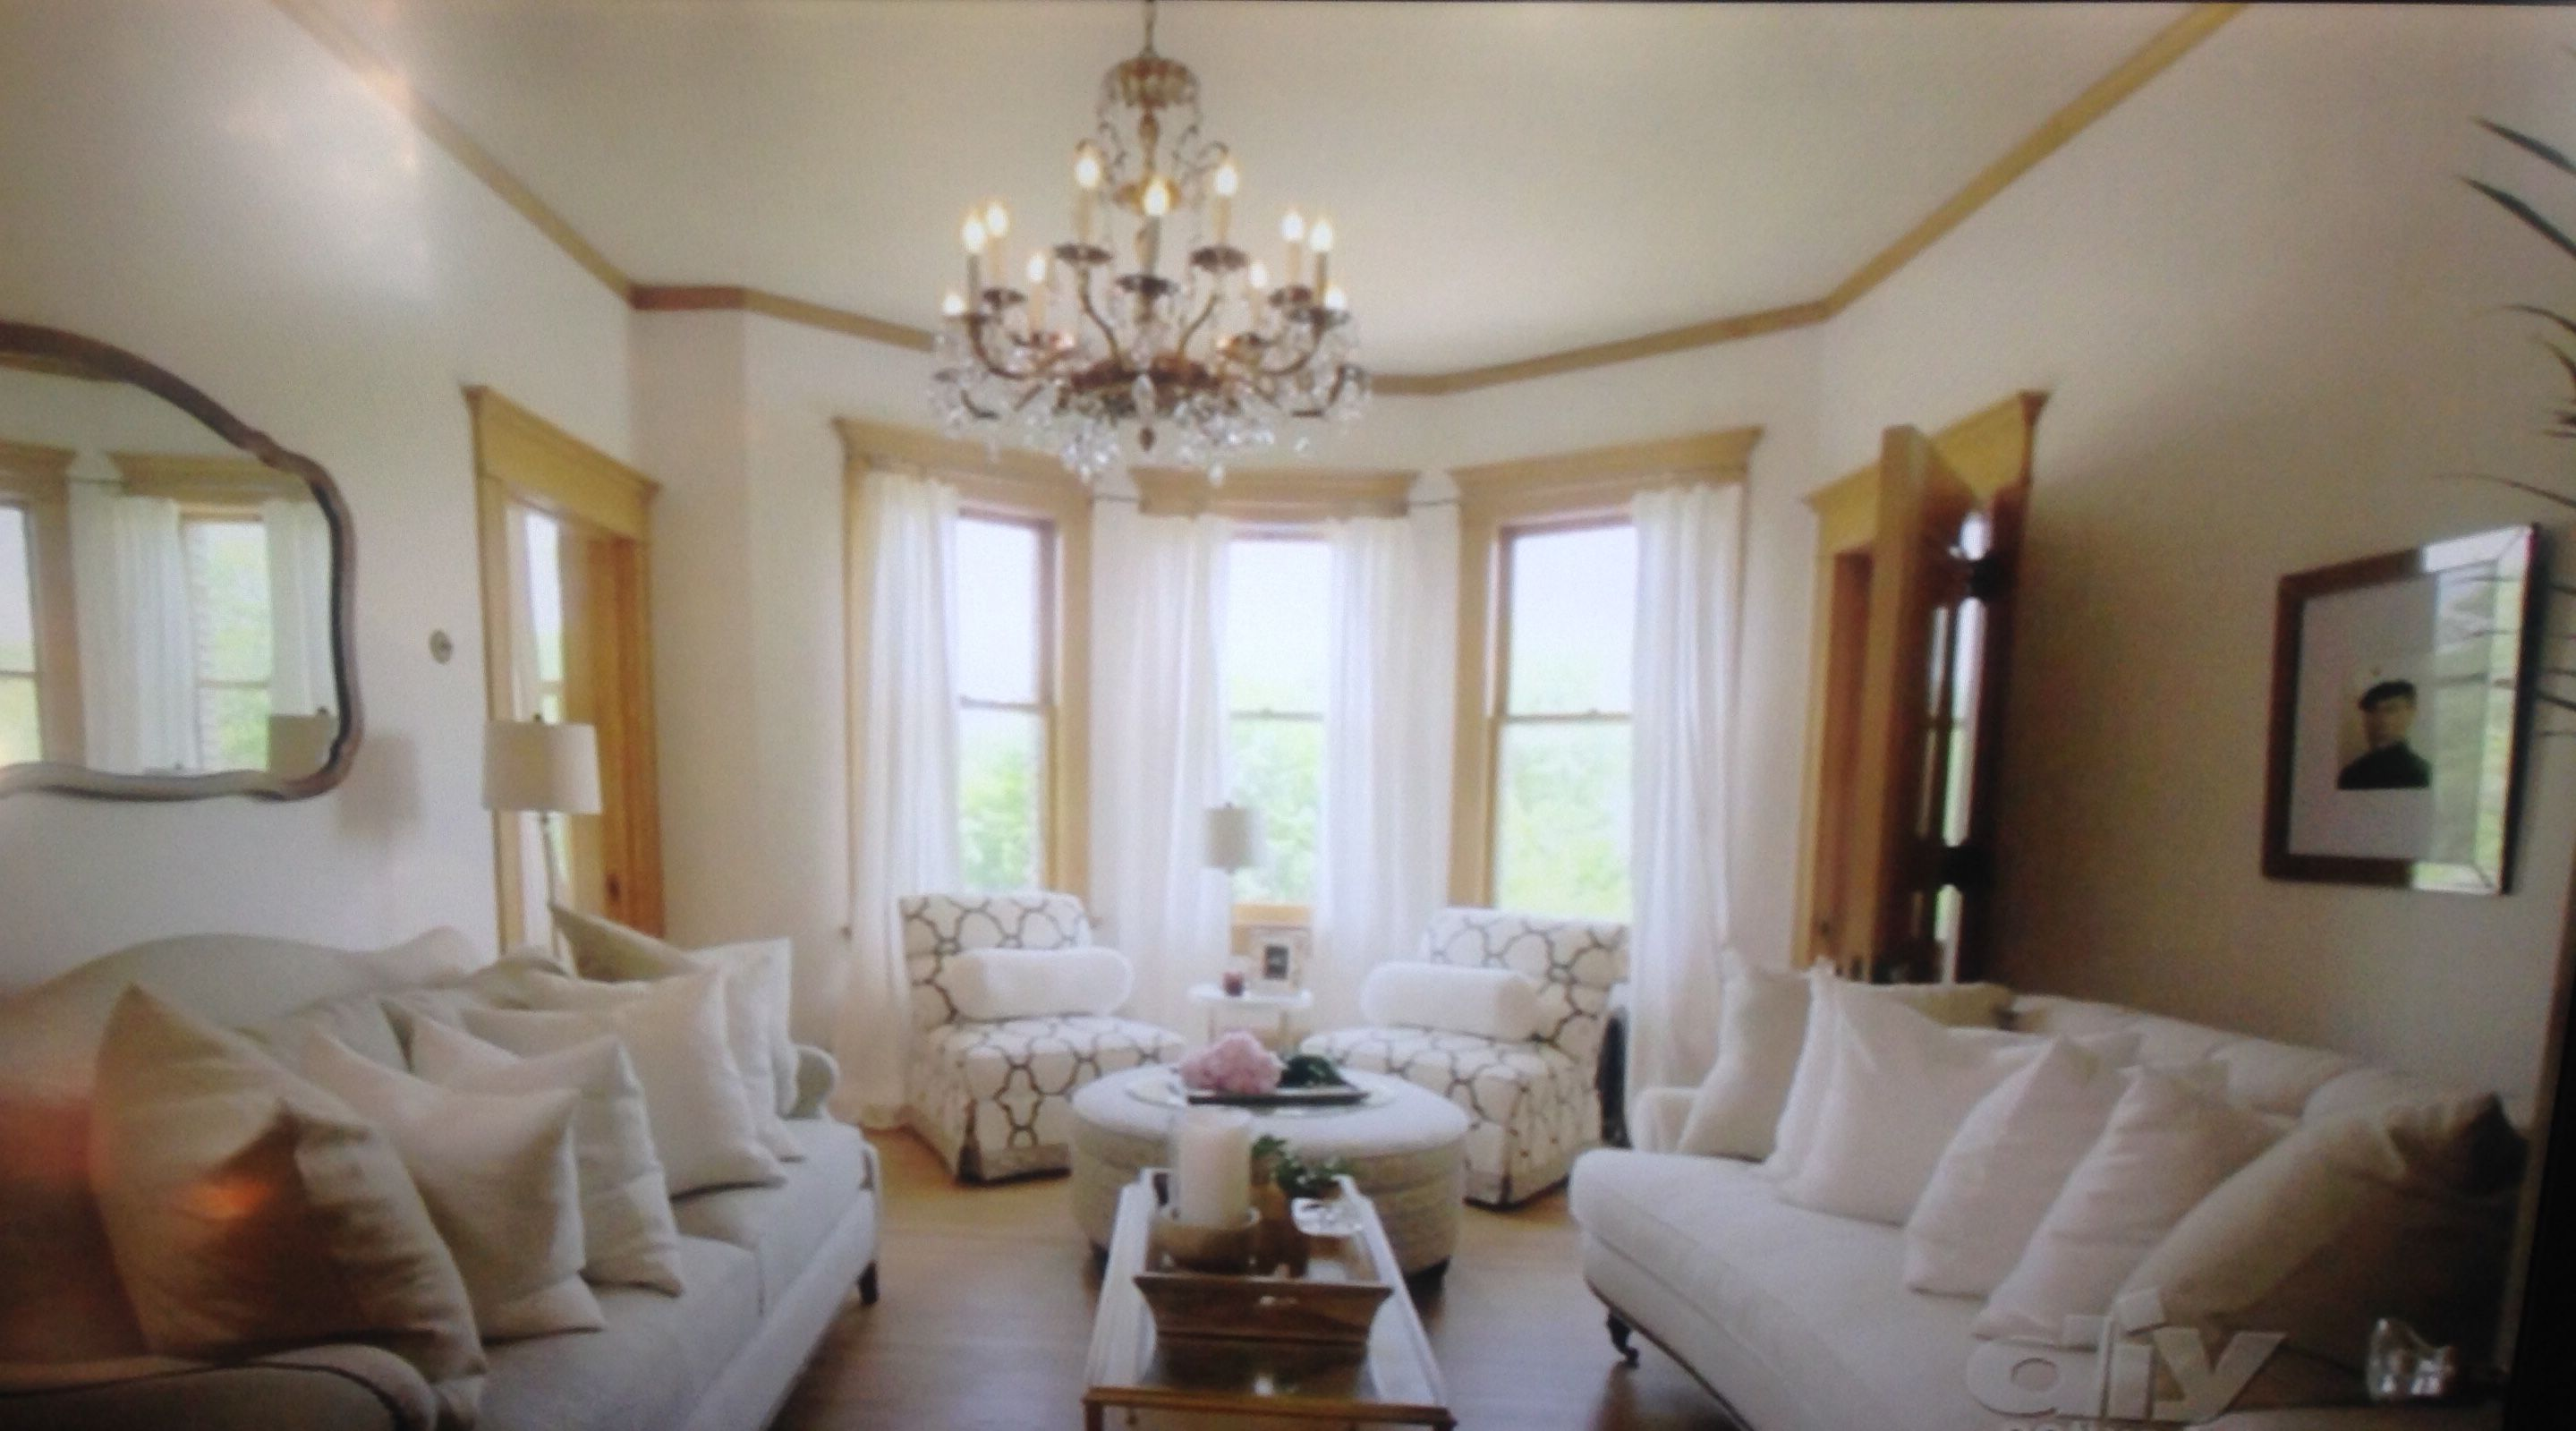 Rehab addict 1904 mansion - Living Room Inspiration 1904 Summit Mansion Rehab Addict Nicole Curtis